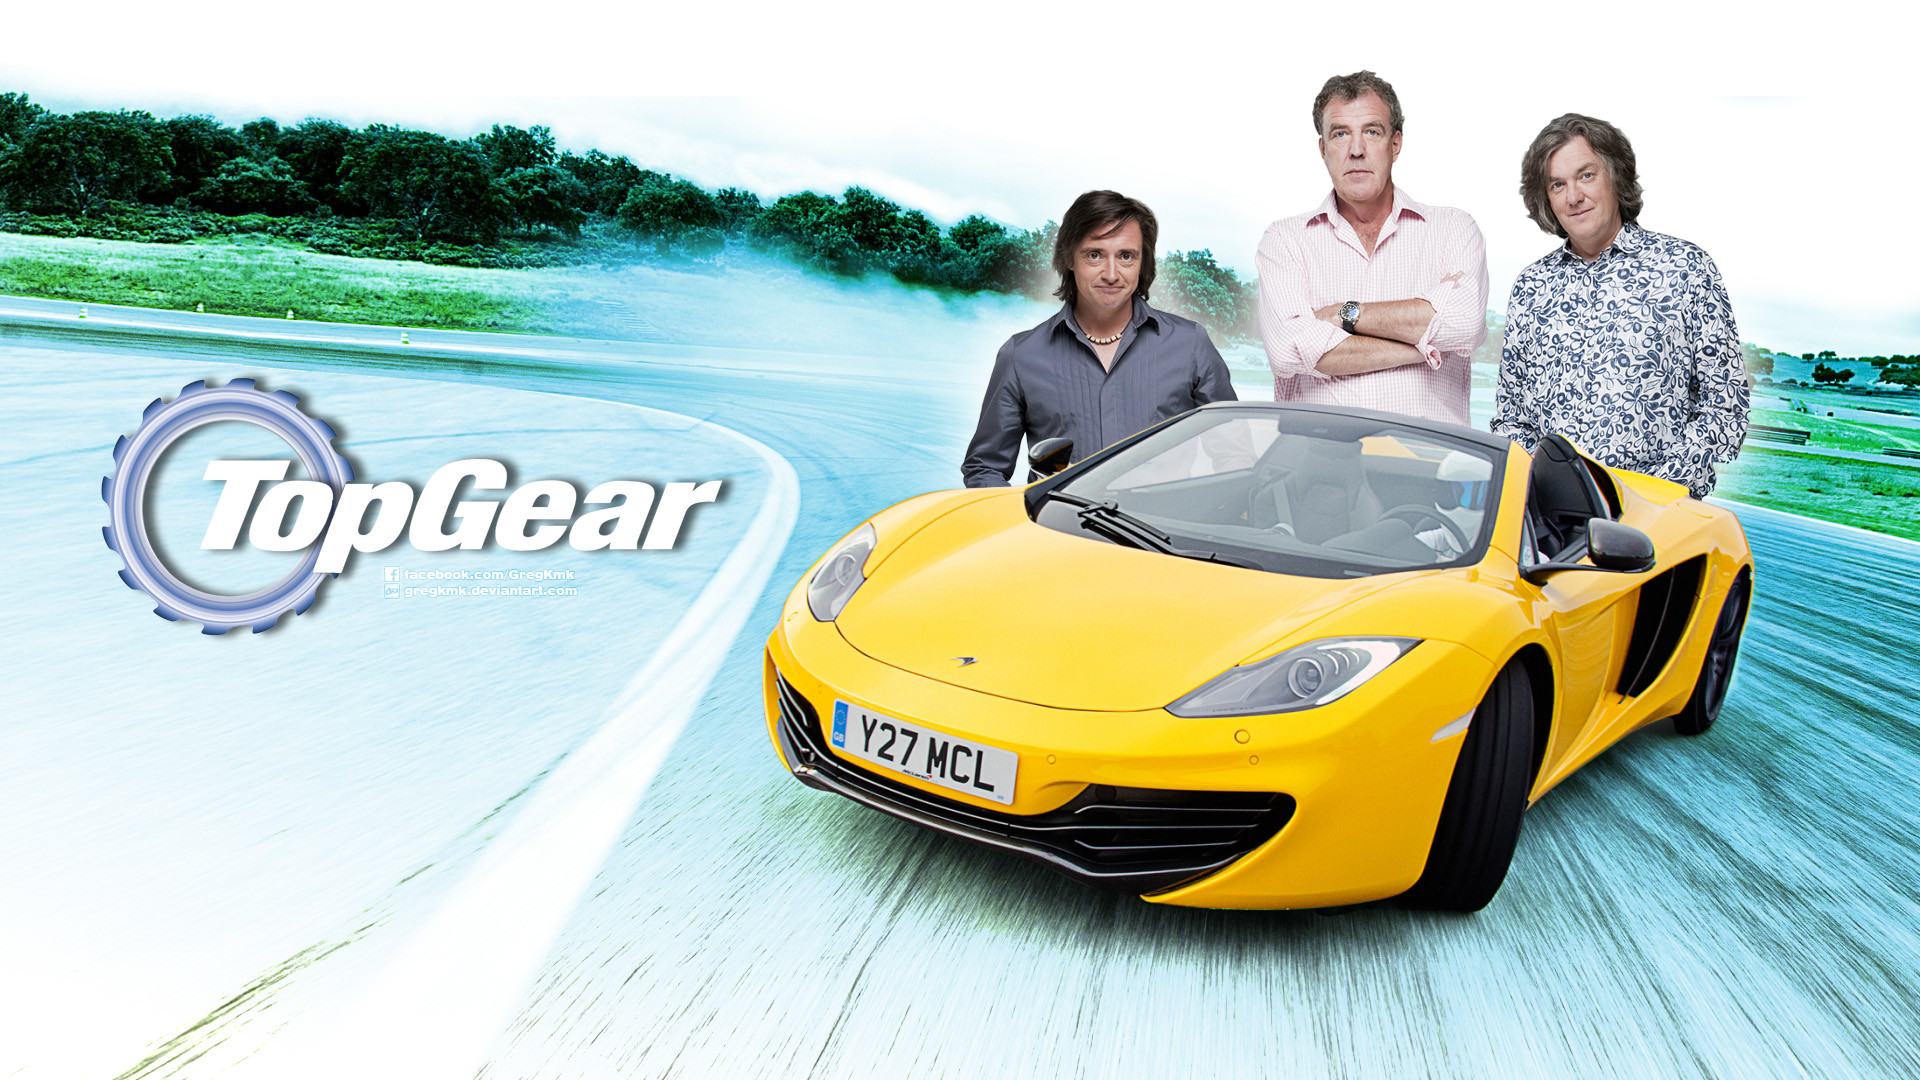 1920x1080 TV Show - Top Gear Richard Hammond James May Jerremy Clarkson Spider  McLaren Wallpaper